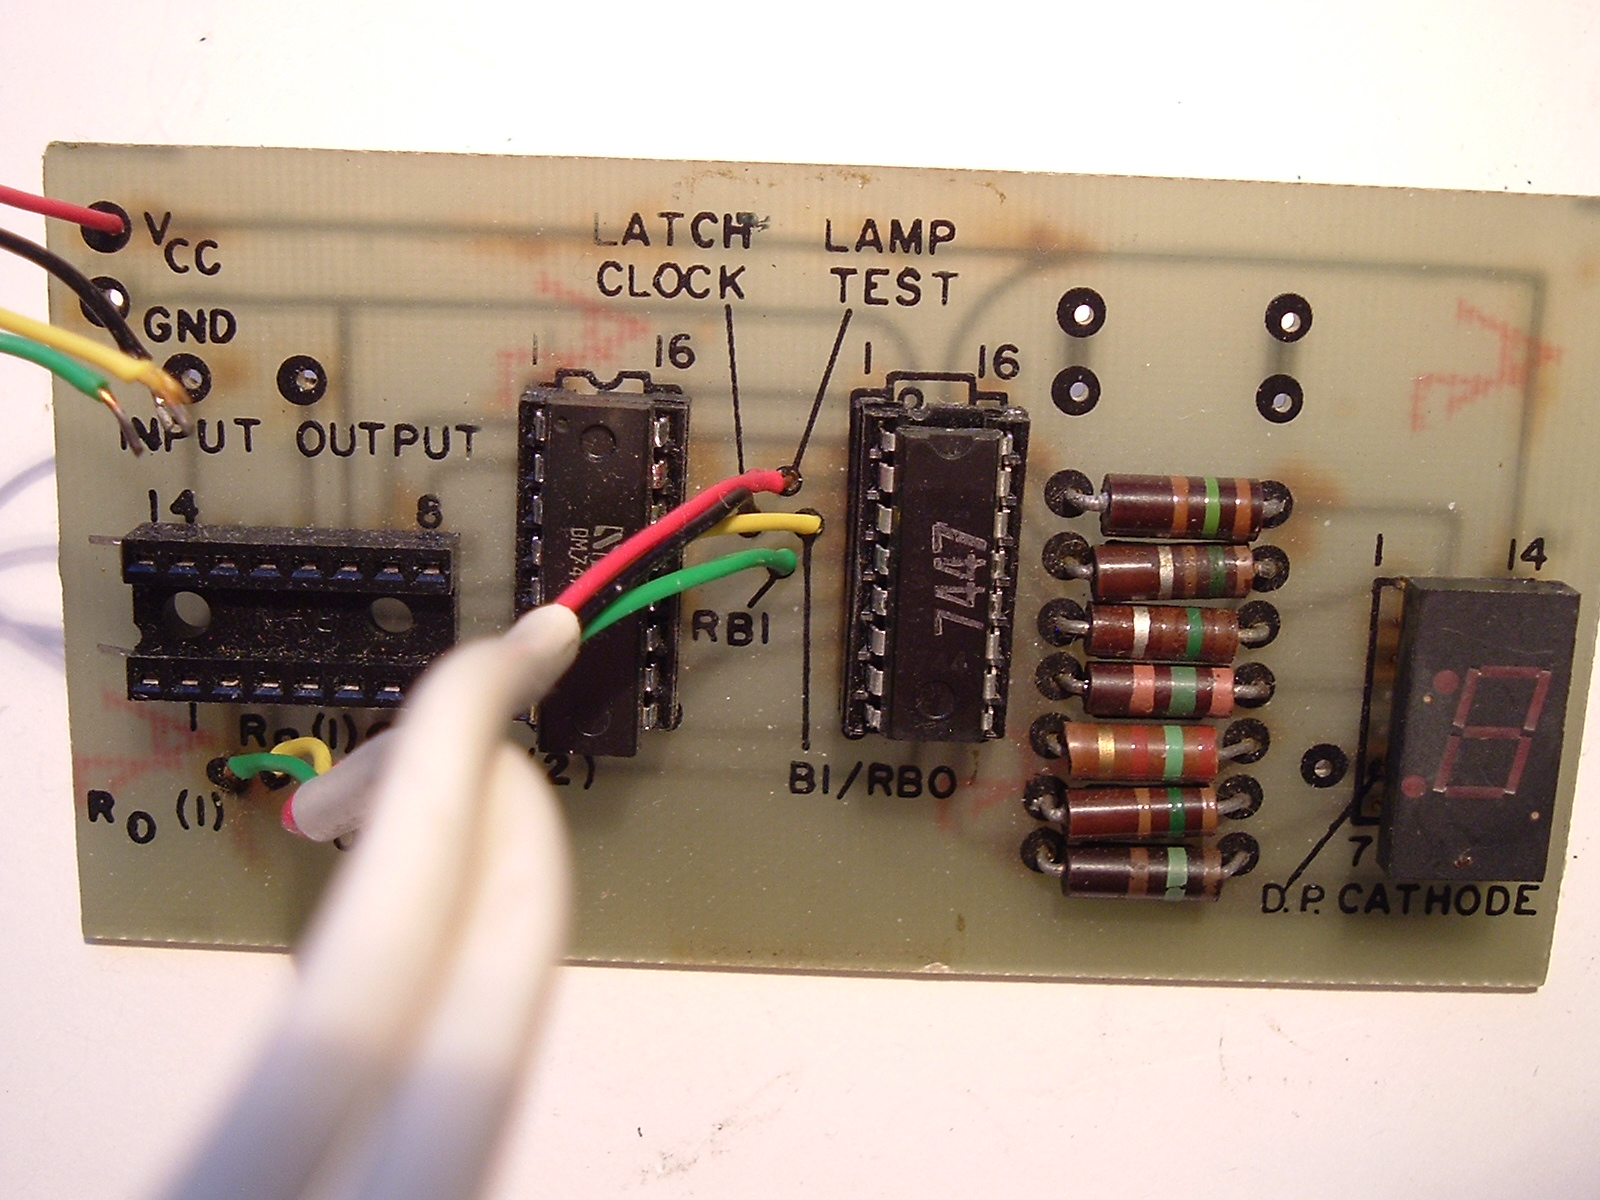 Led Bcd To Seven Segment Display Decoder Logic Diagram 0f A Radio Shack Kit 7 7447 Driver 7475 4 Bit Latch And Socket For Counter 7490 Decade